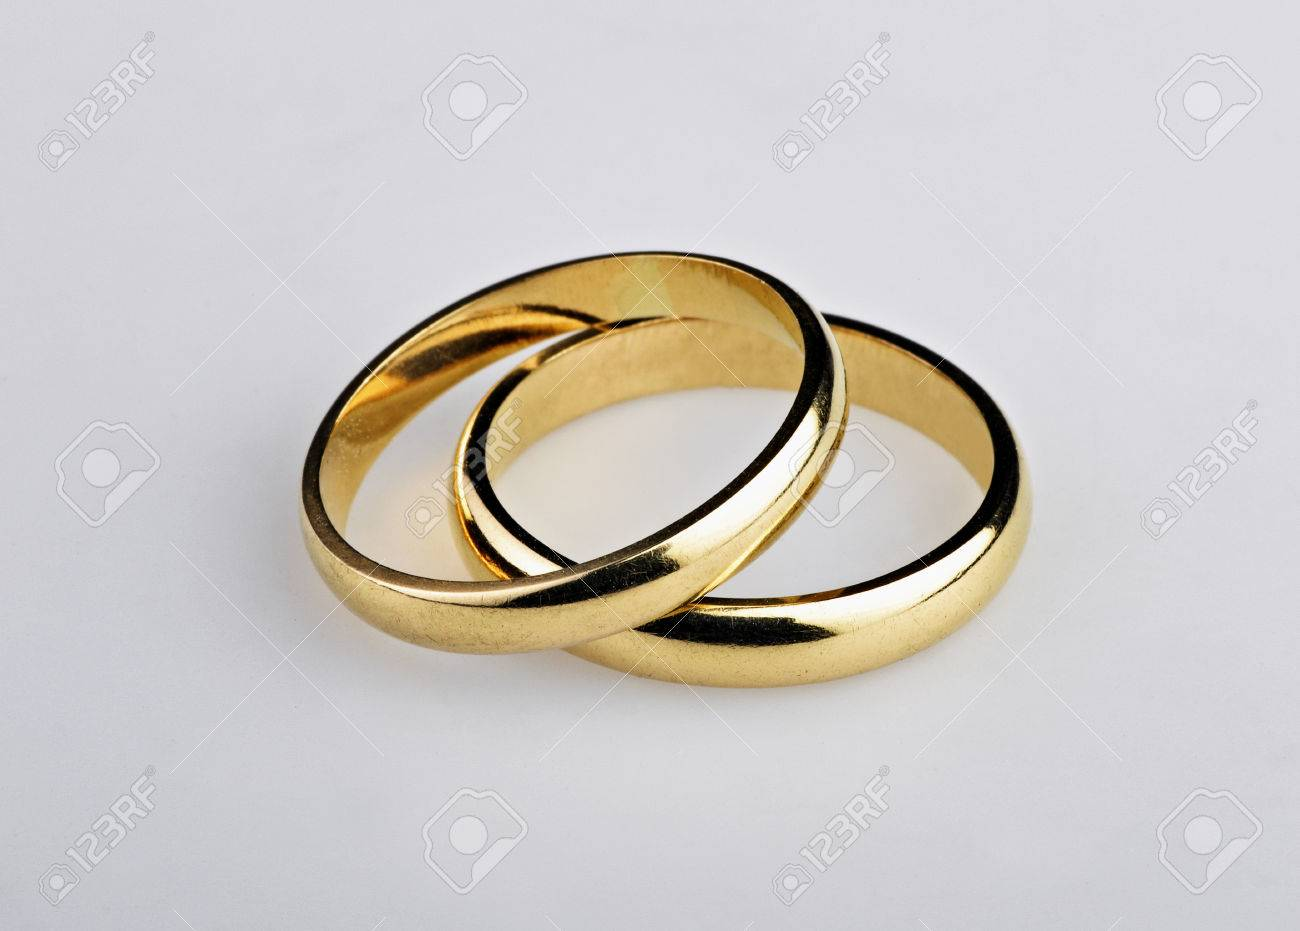 used golden wedding rings on gray background download - Used Wedding Rings For Sale